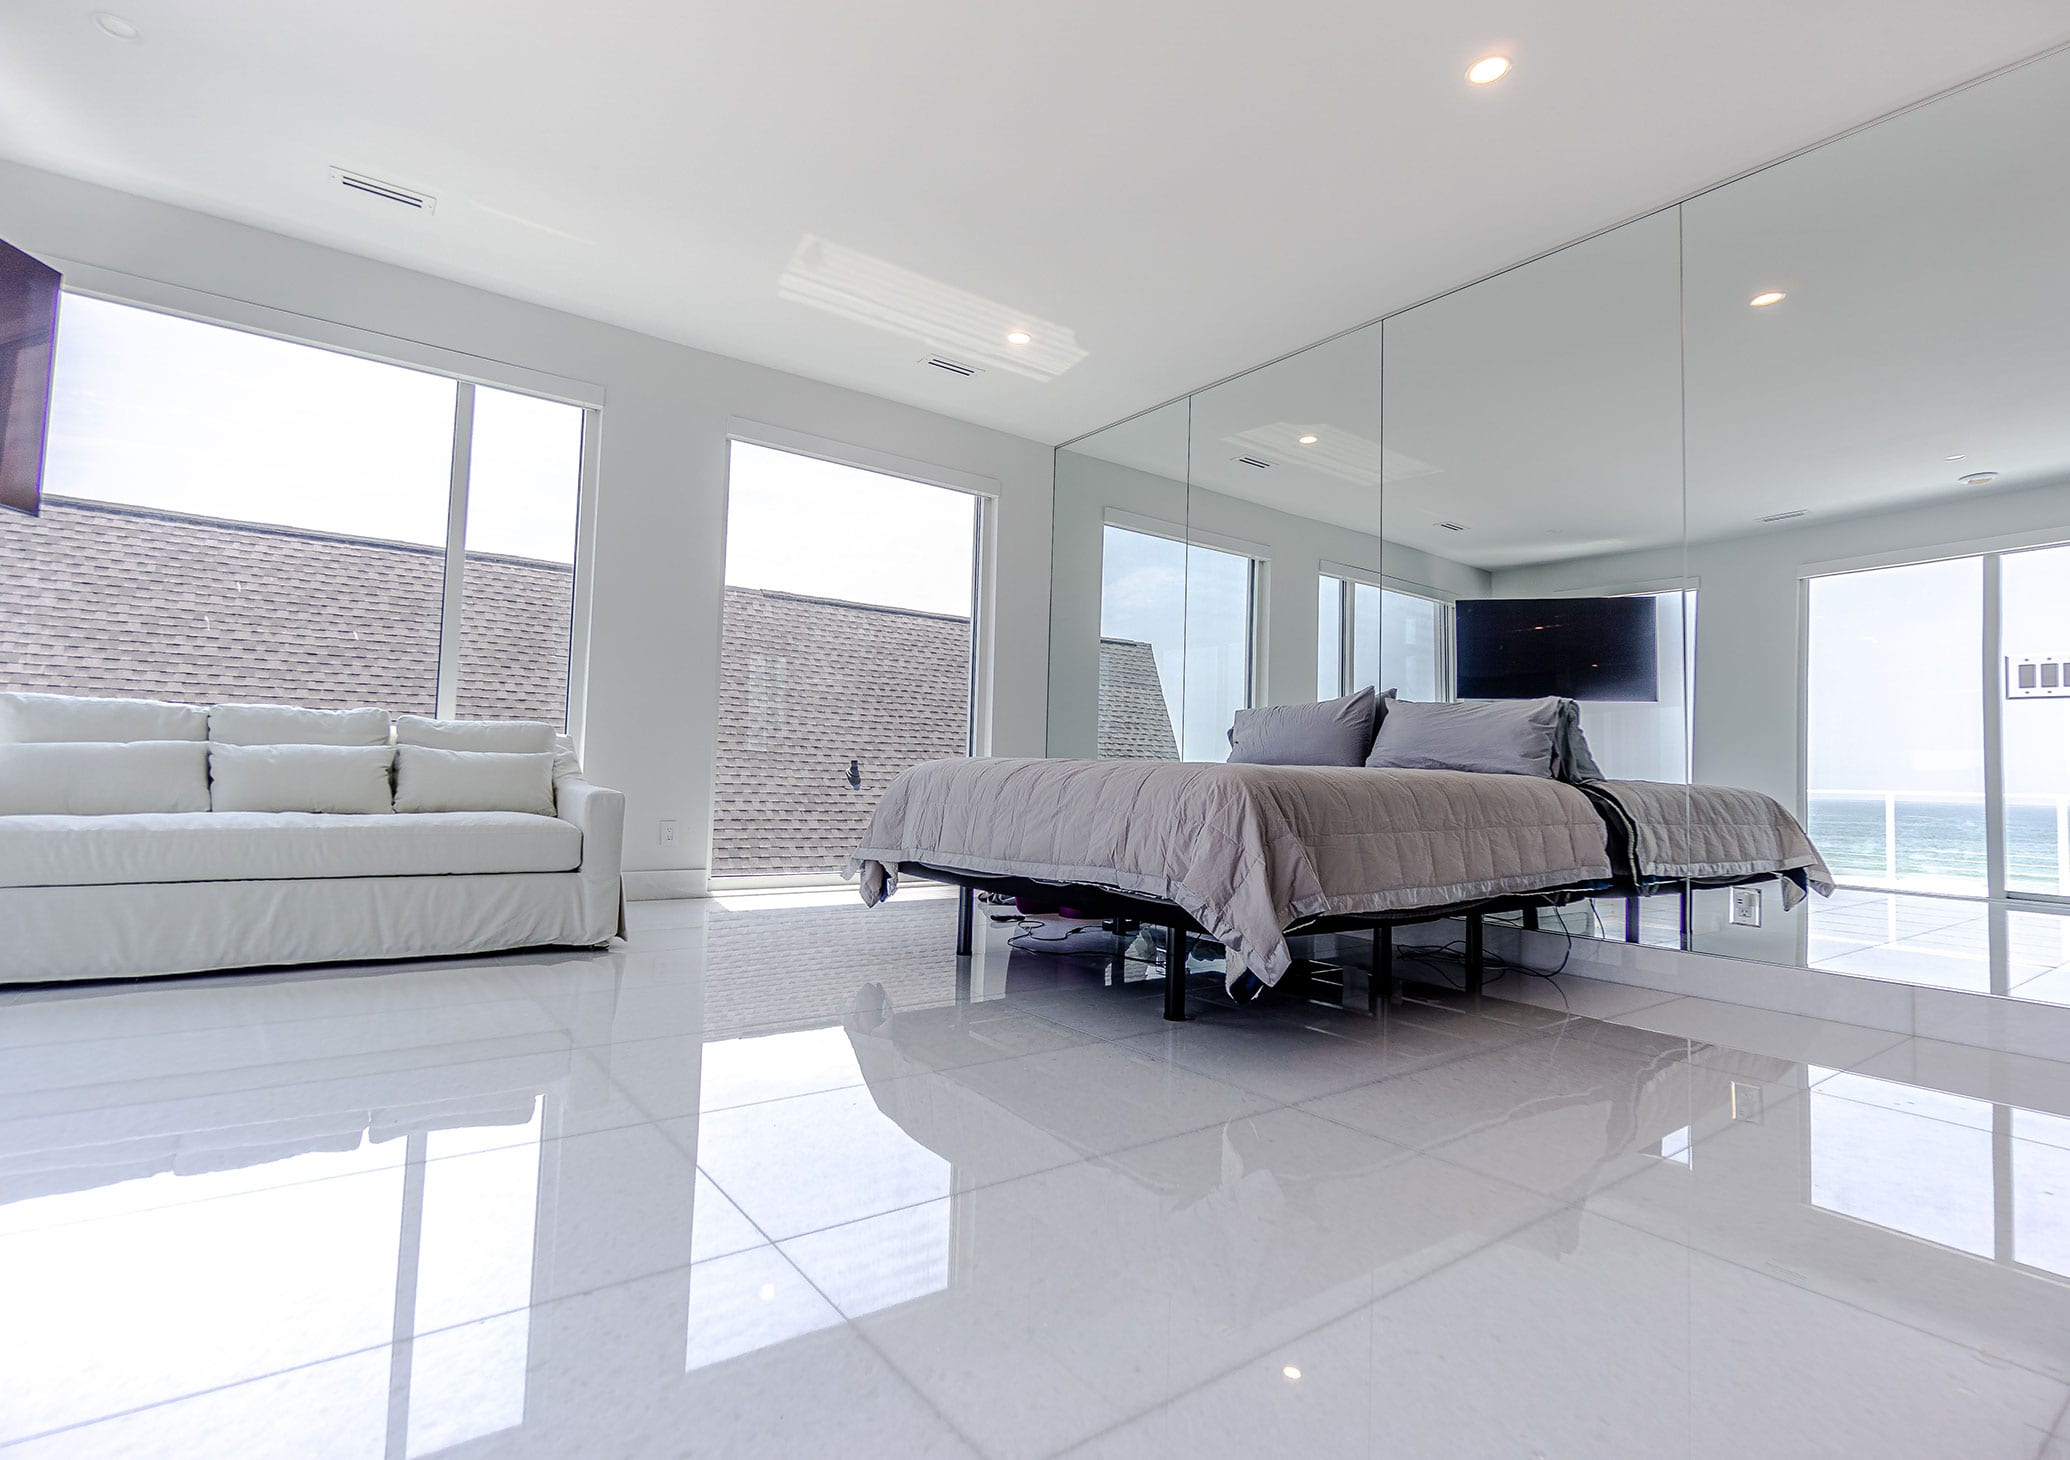 Stoneline-Group-Diamond-White-Marble-Florida-Marble-Collection-Marble-Tile-Hotel-room-deluxe-room-Design-2